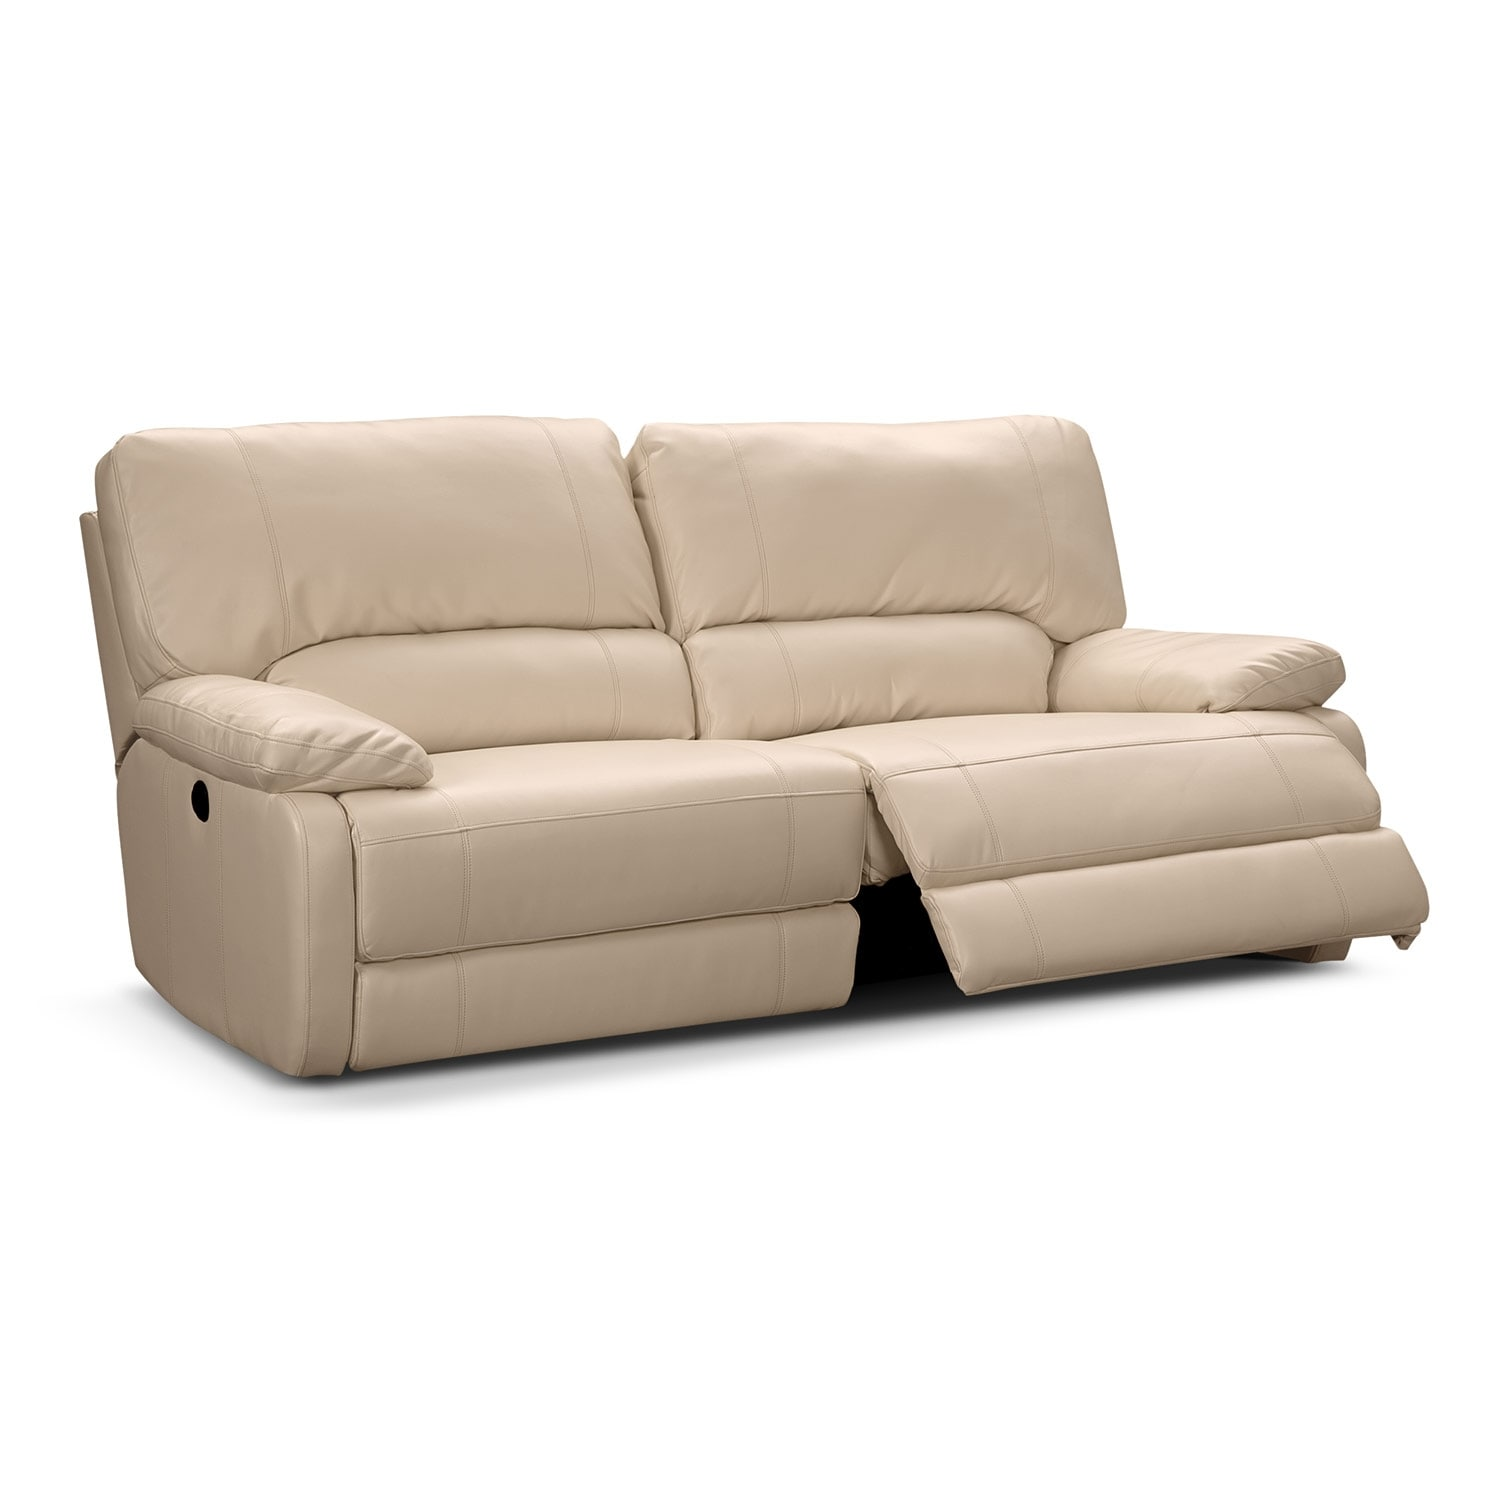 Coronado leather power reclining sofa value city furniture Leather reclining sofa loveseat